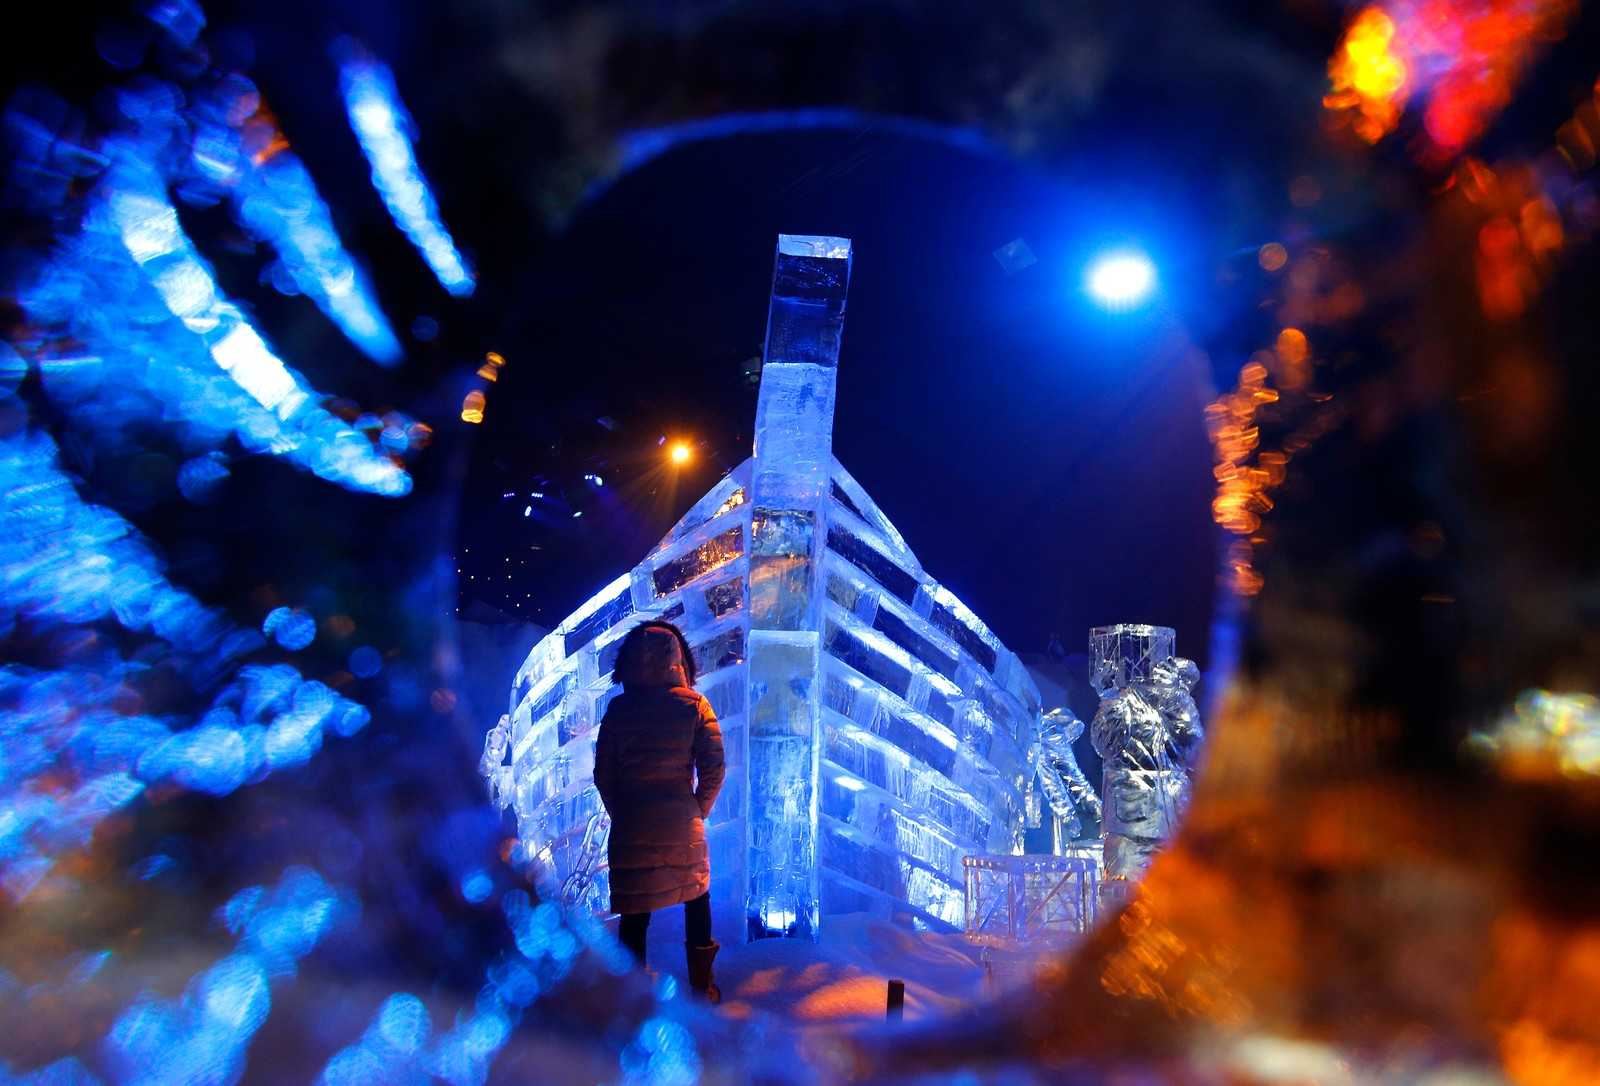 En isskulptur ved en utstilling i London som er kalt Hyde Park Winter Magical Ice Kongdom.